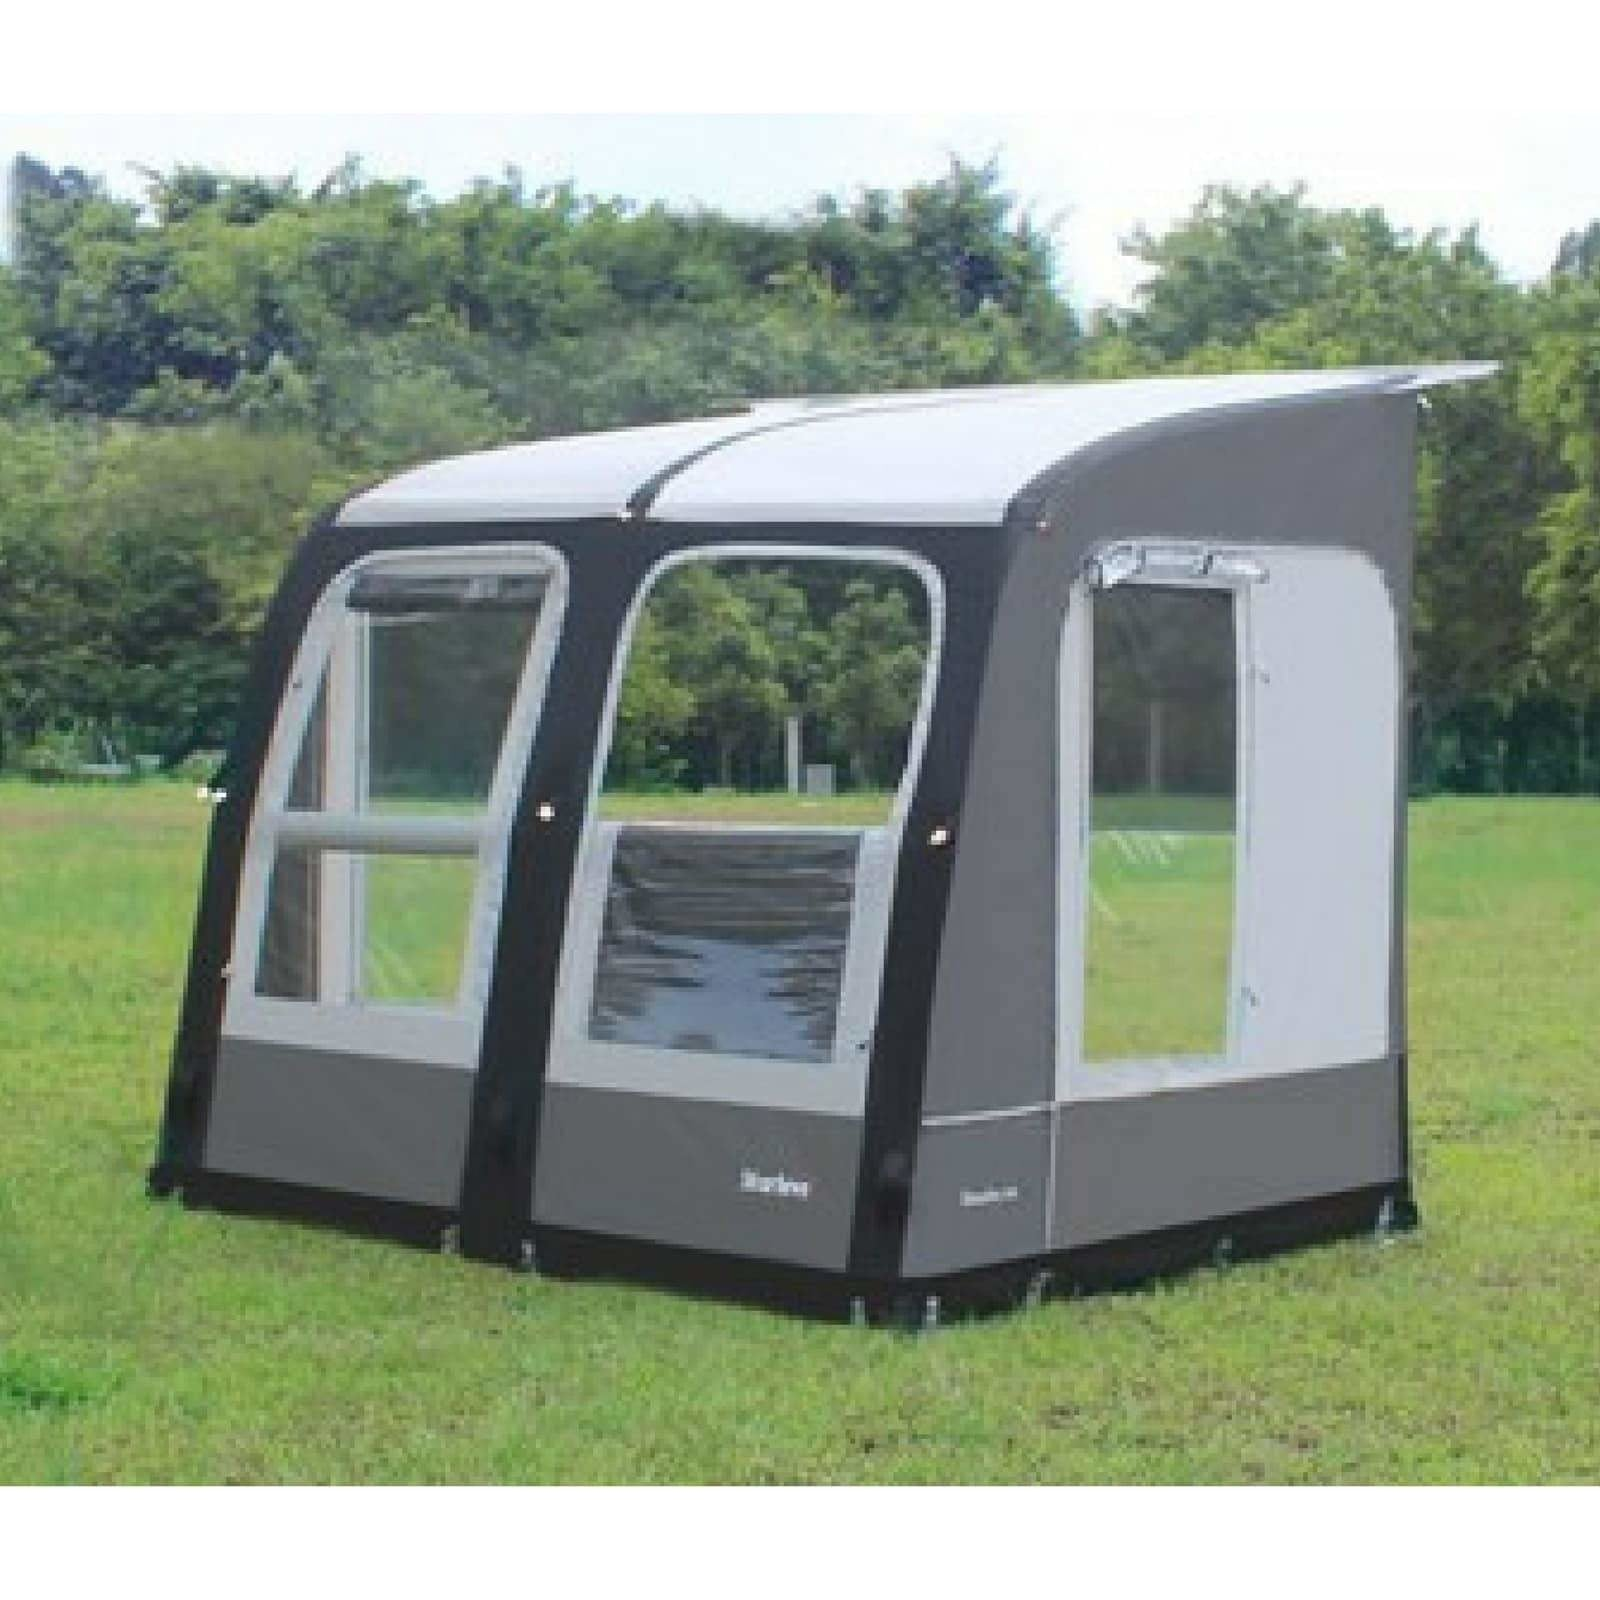 Quality Caravan Awnings Reviews From Quality Caravan Awnings